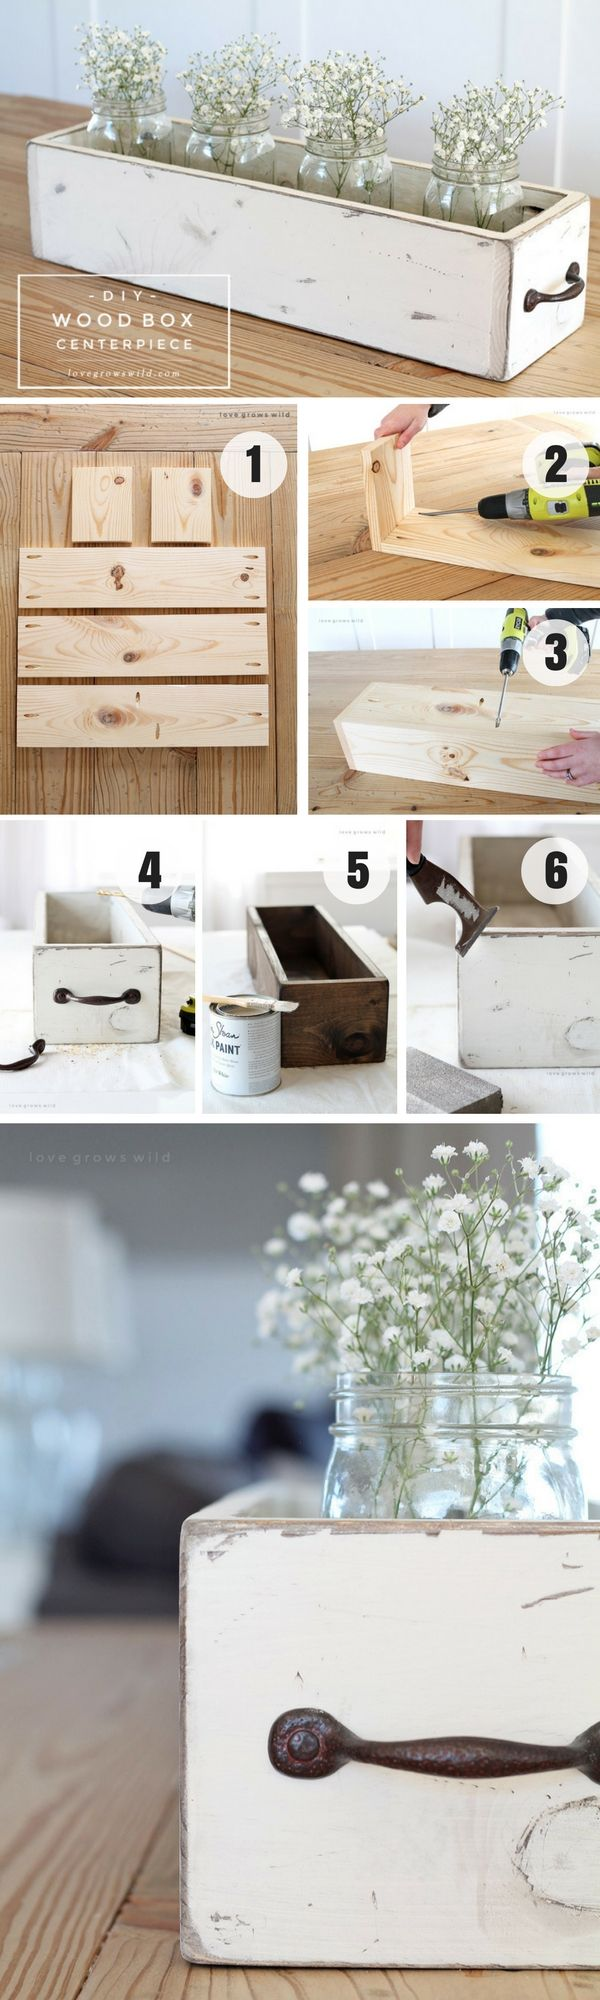 Check out how to build an easy DIY Wood Box Centerpiece @istandarddesign                                                                                                                                                                                 More